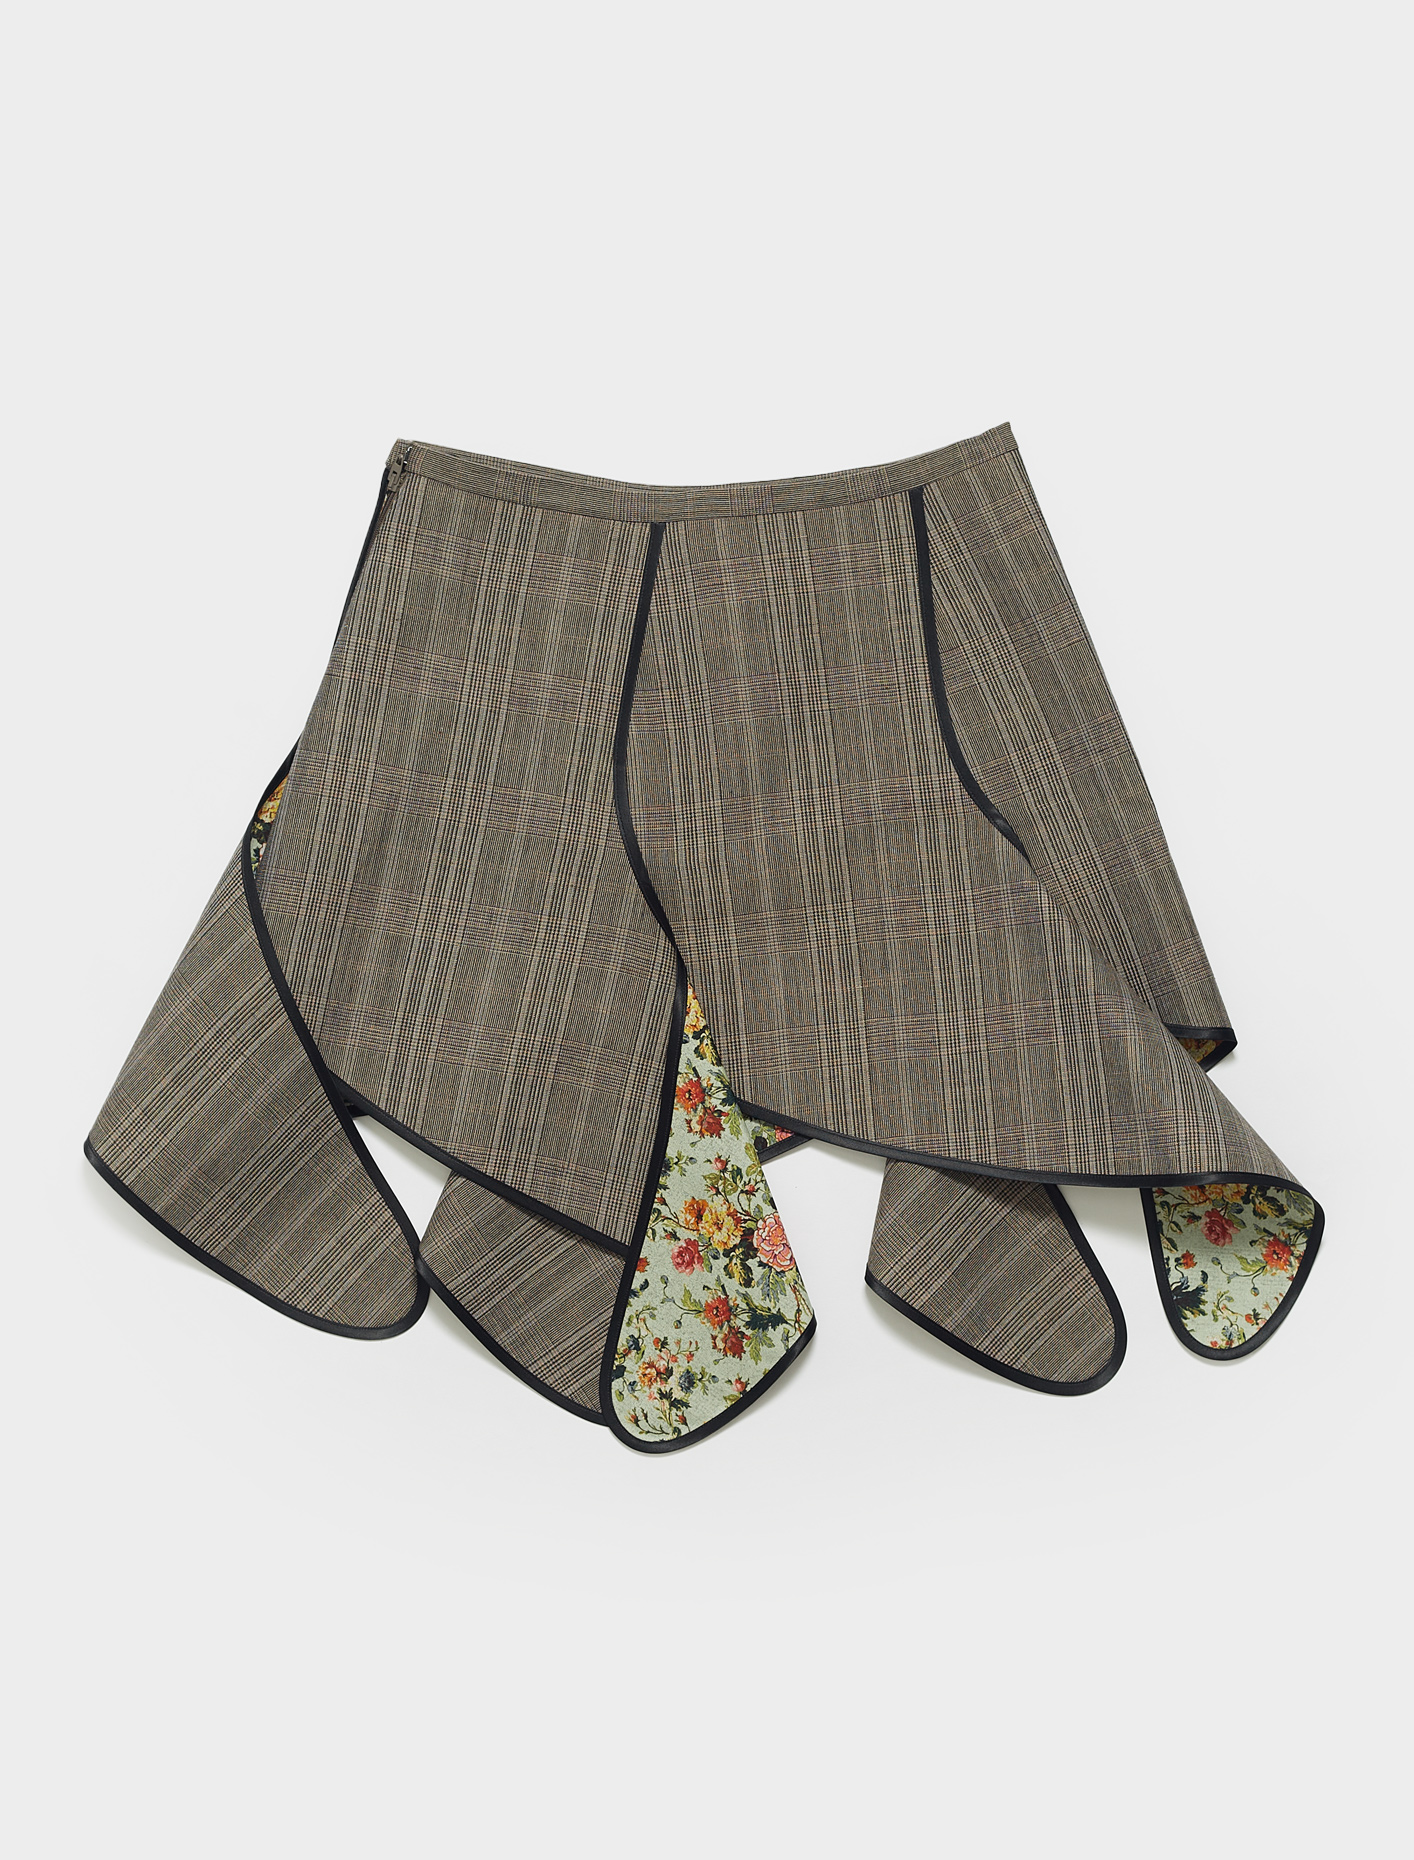 WSKIRT57-S20 Y PROJECT BANANA MINI SKIRT IN BROWN CHECK